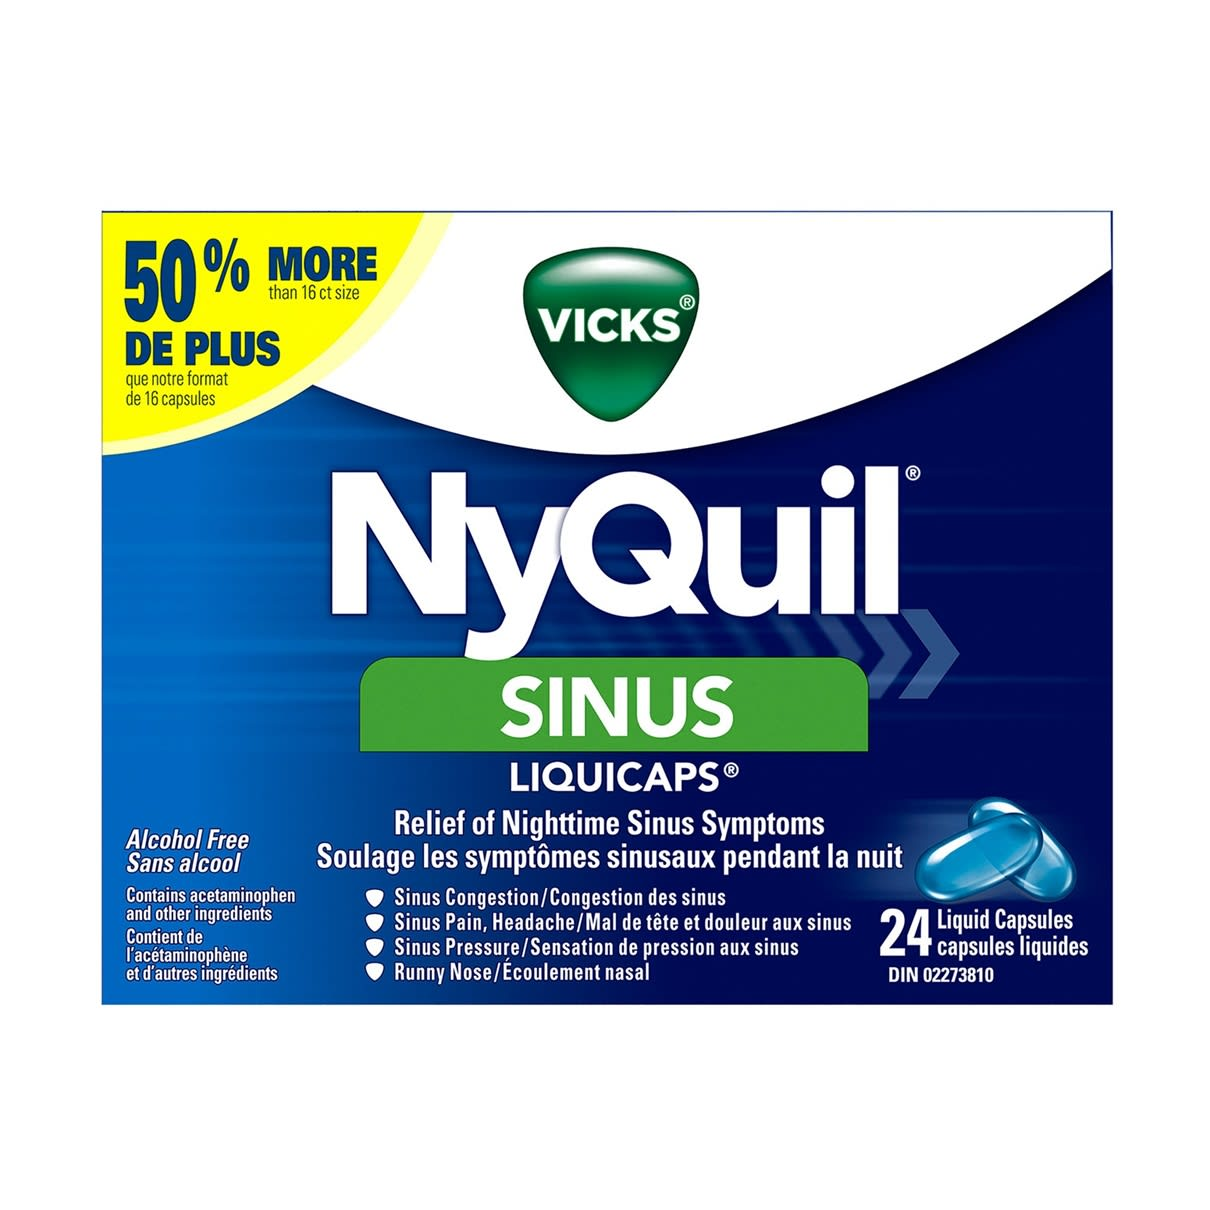 NyQuil Sinus Liquicaps